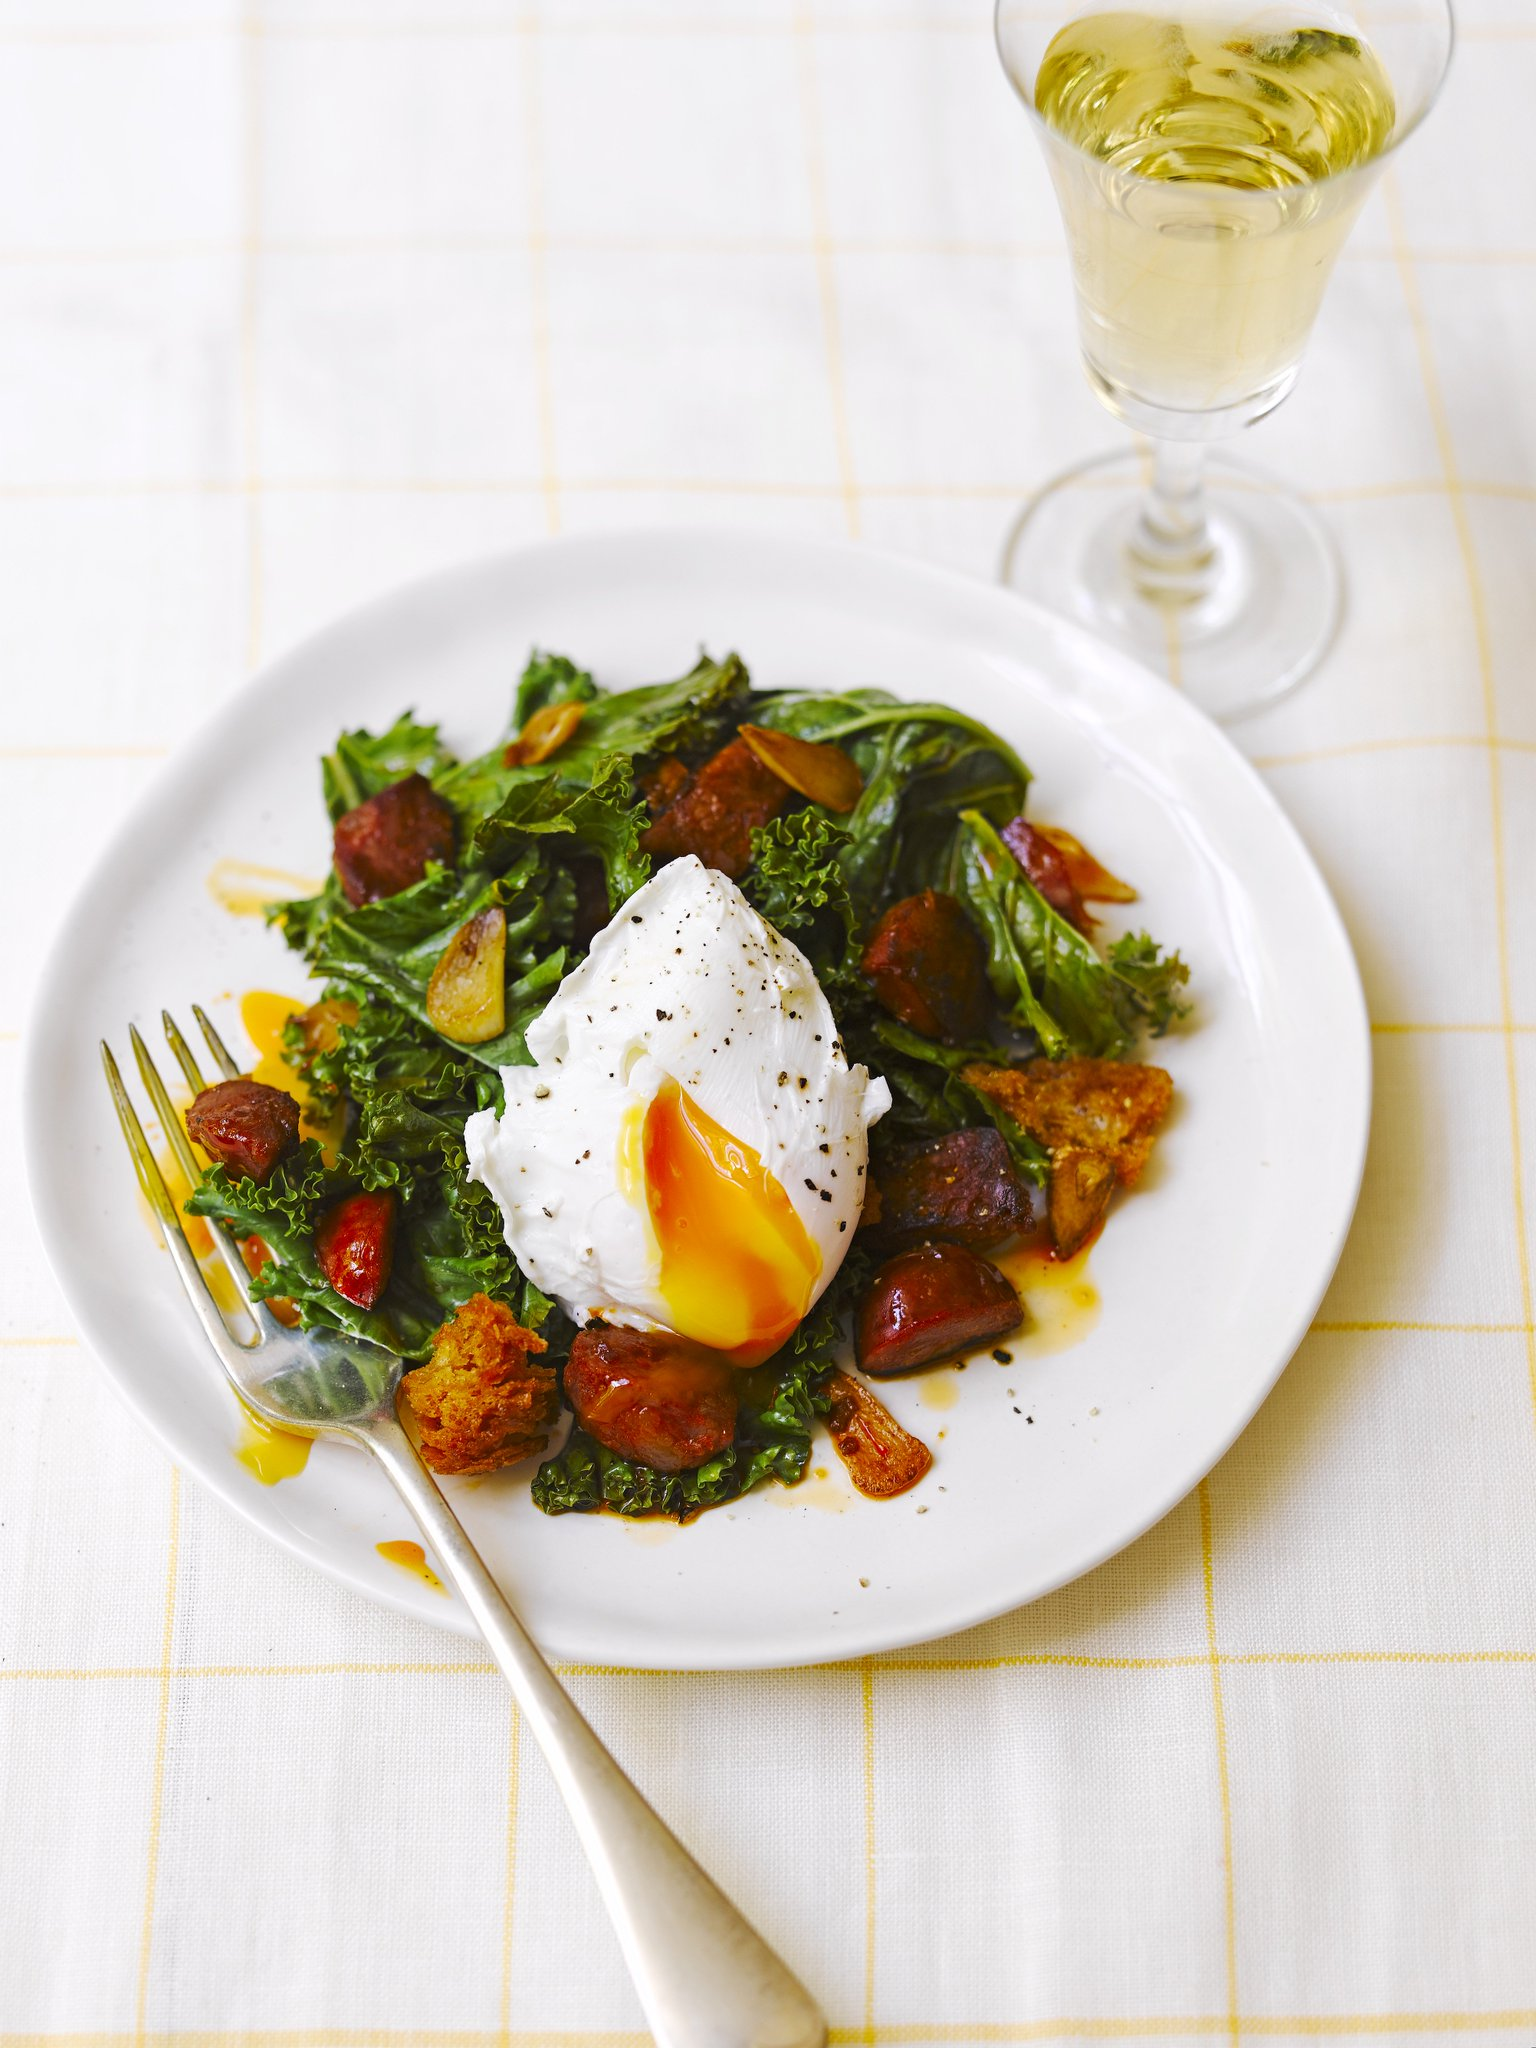 Eggs for dinner? Yes please! Plus kale, chorizo & croutons, all ready in only 15 mins... 🙌 https://t.co/KqFaOmPSLV https://t.co/H3am94RALG